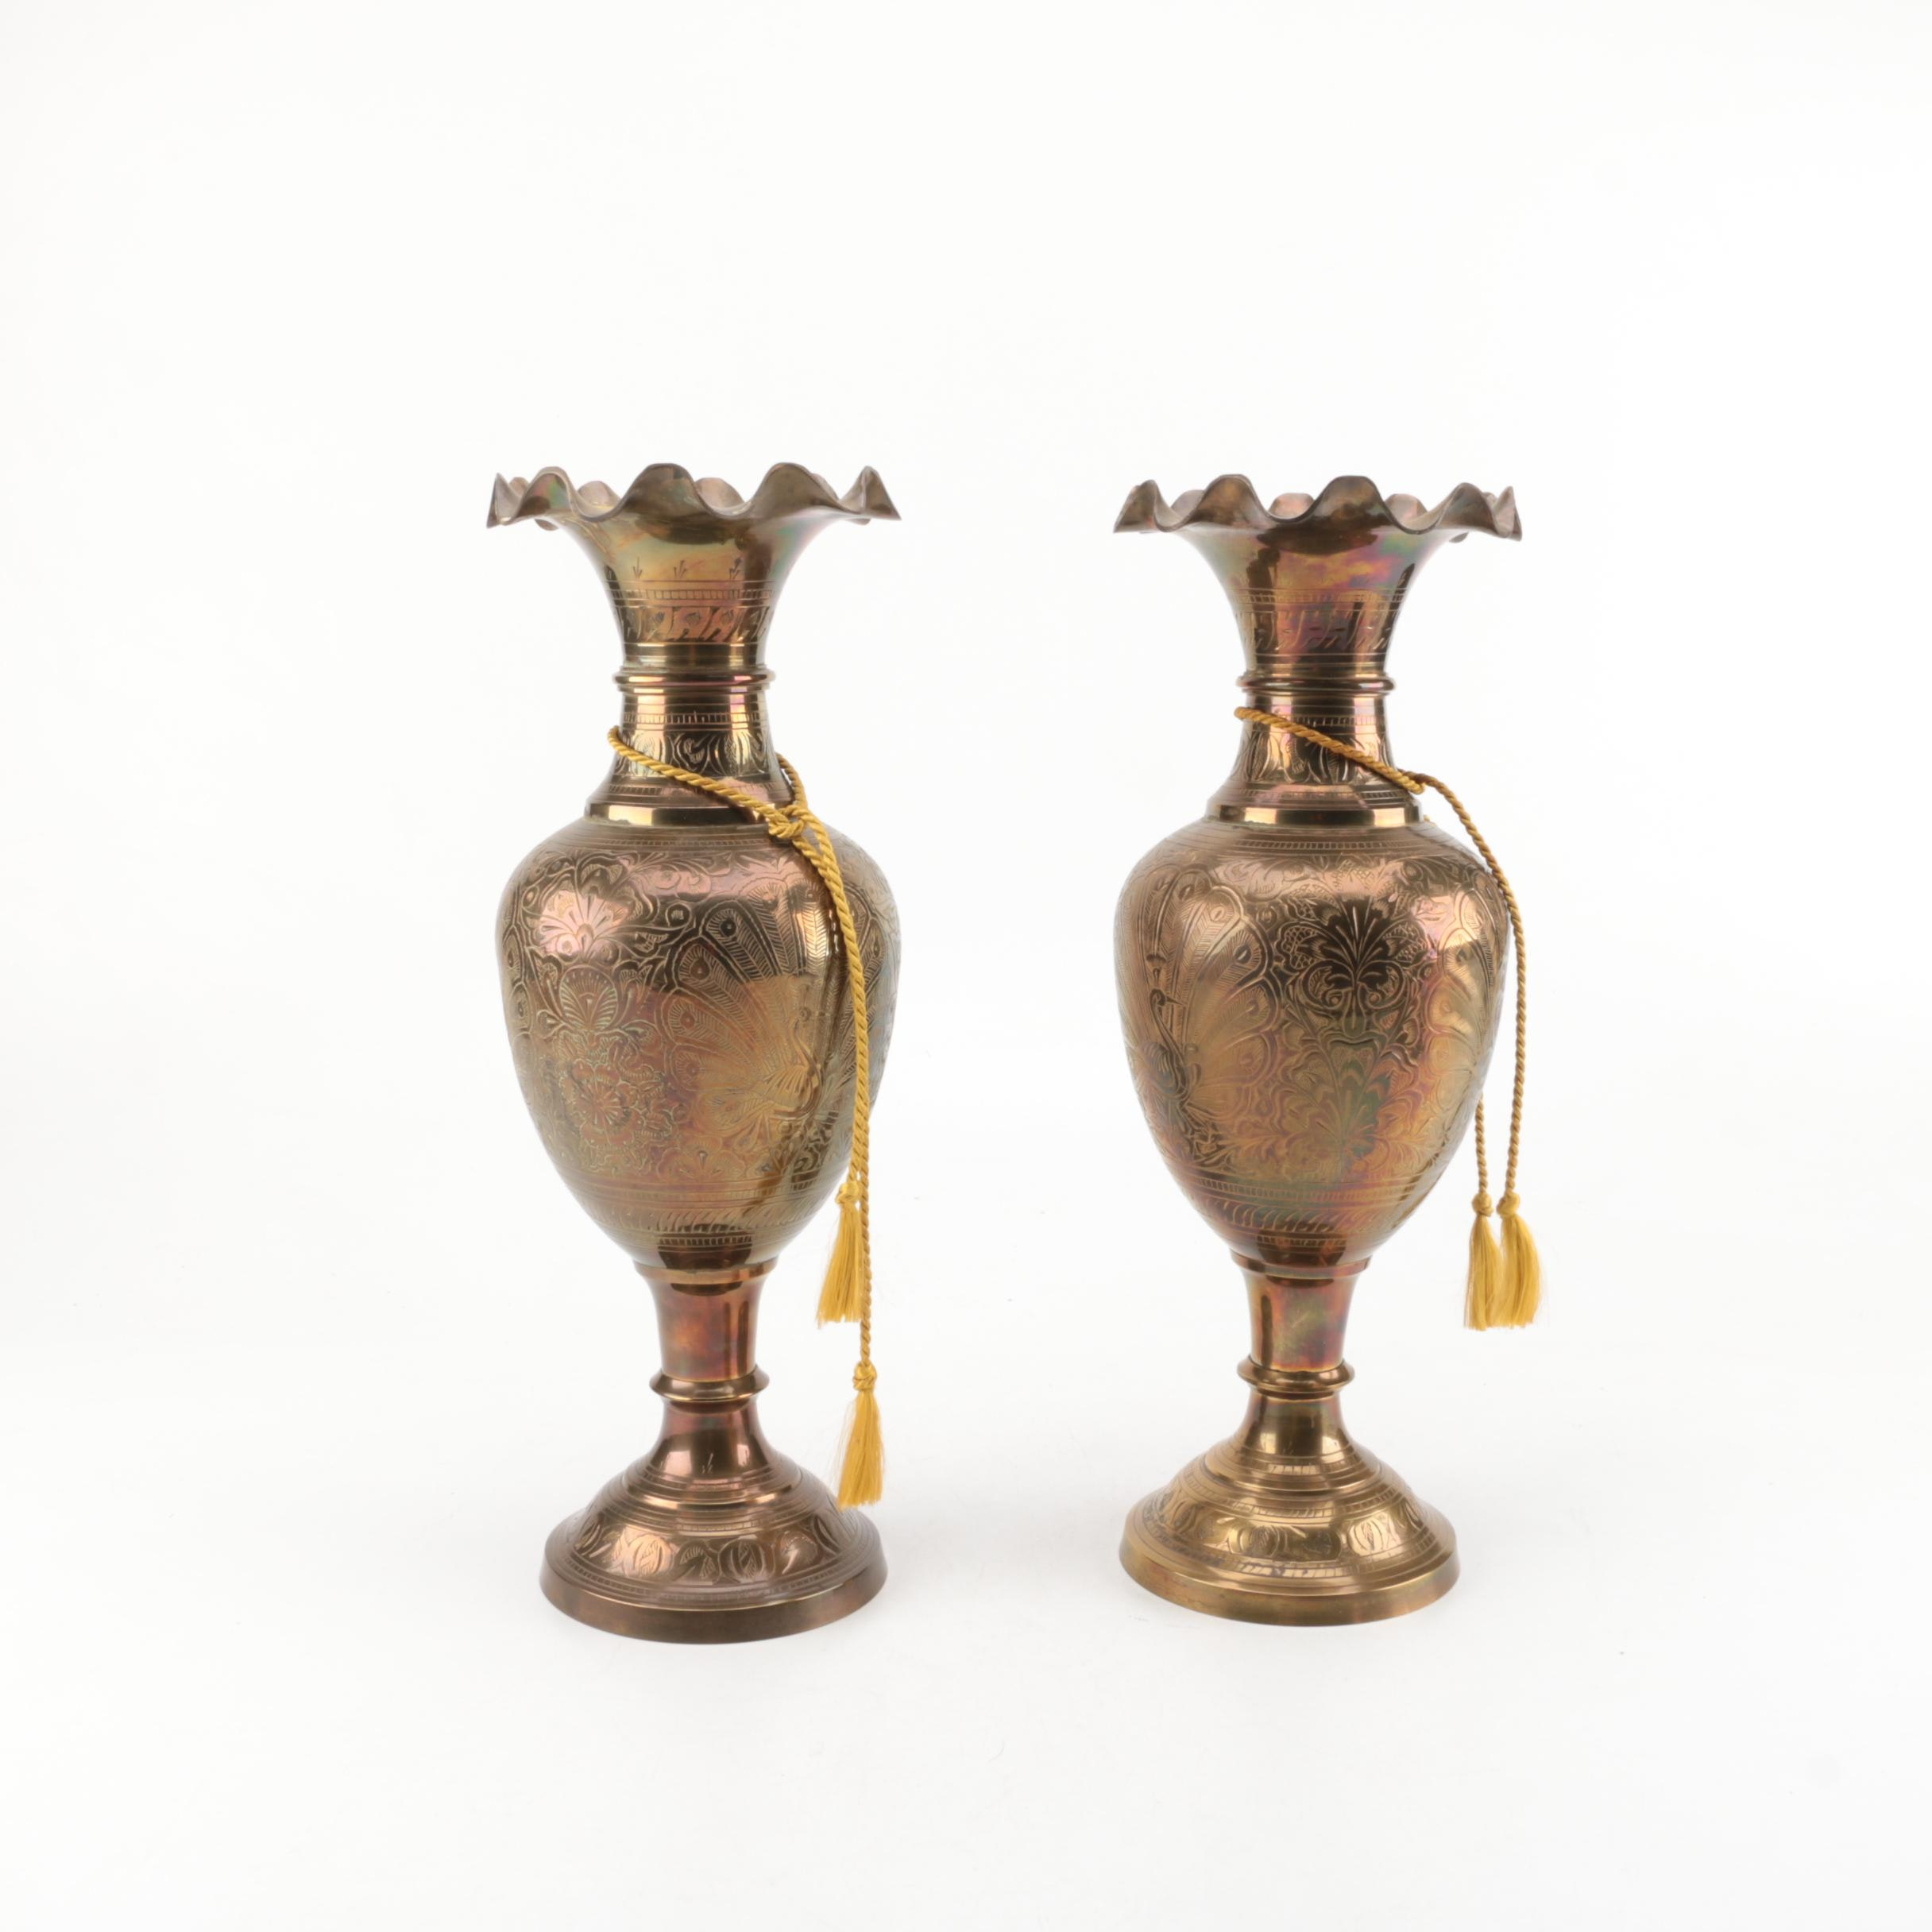 Ornate Peacock and Floral Motif Brass Vases